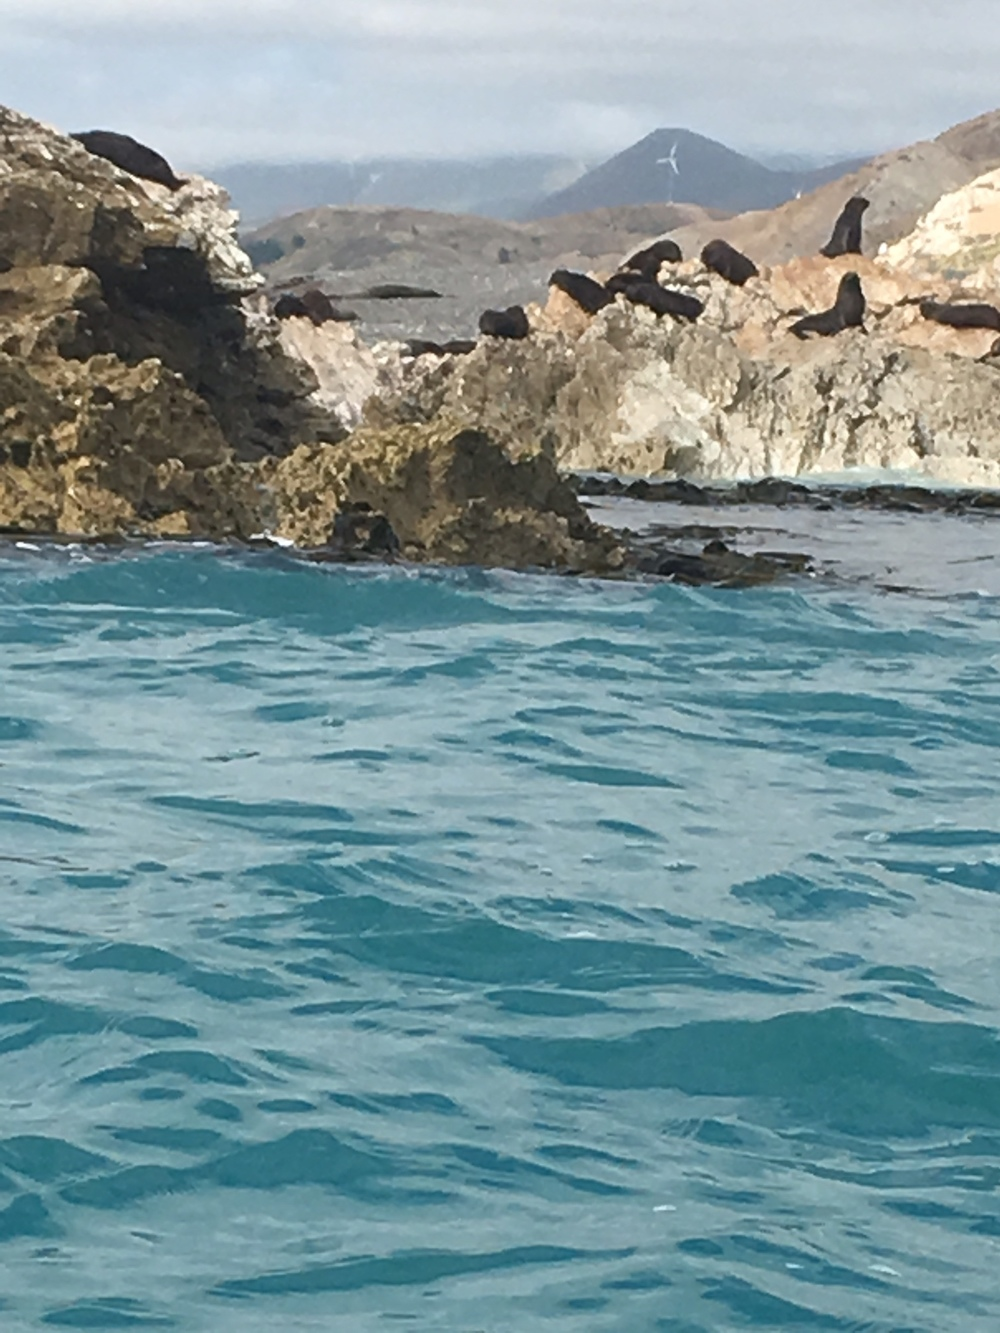 Seals on the rock